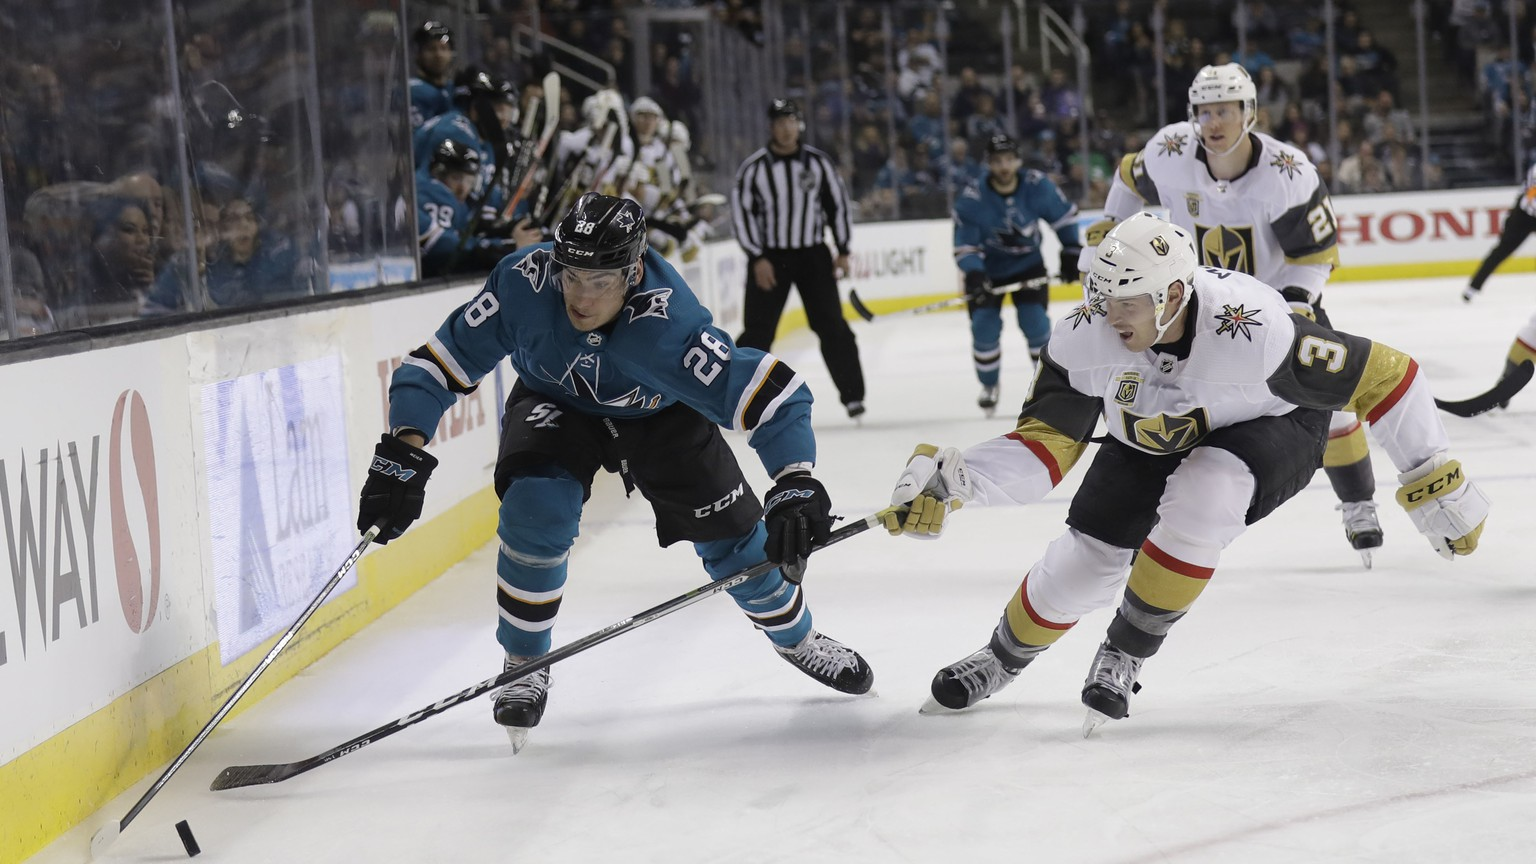 San Jose Sharks' Timo Meier, left, is defended by Vegas Golden Knights' Brayden McNabb during the second period of an NHL hockey game Thursday, March 22, 2018, in San Jose, Calif. (AP Photo/Marcio Jose Sanchez)